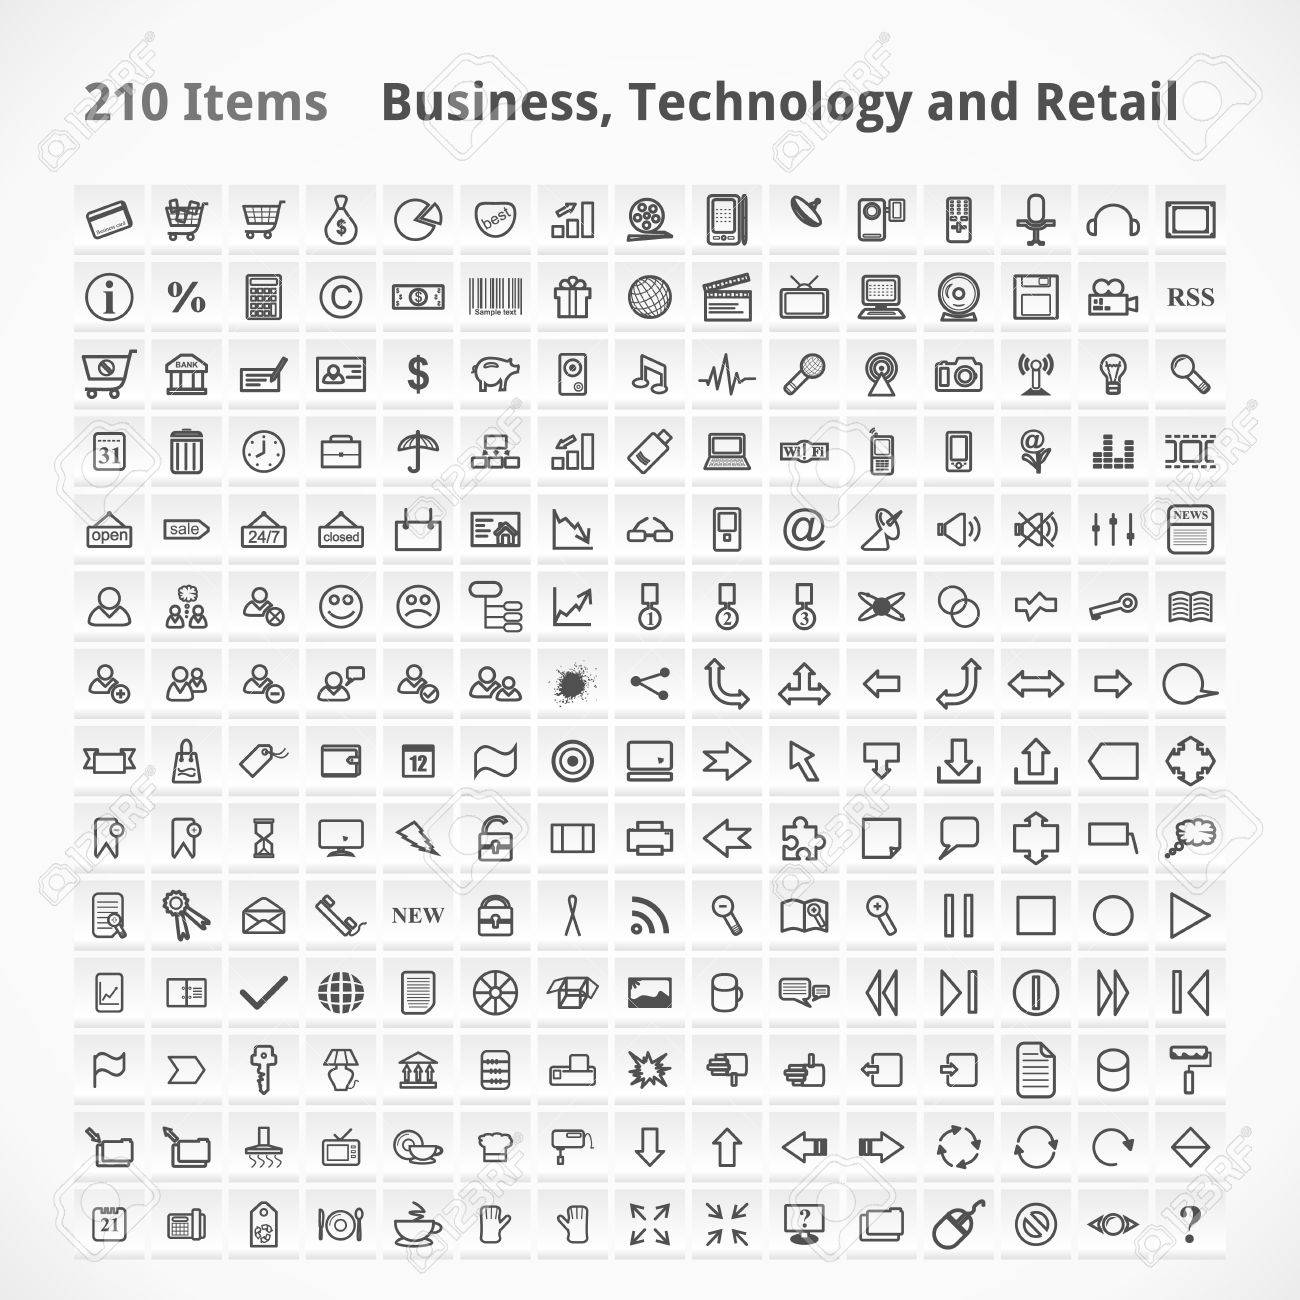 Business, Technology and Retail Items. Icons Set. Stock Vector - 17585069